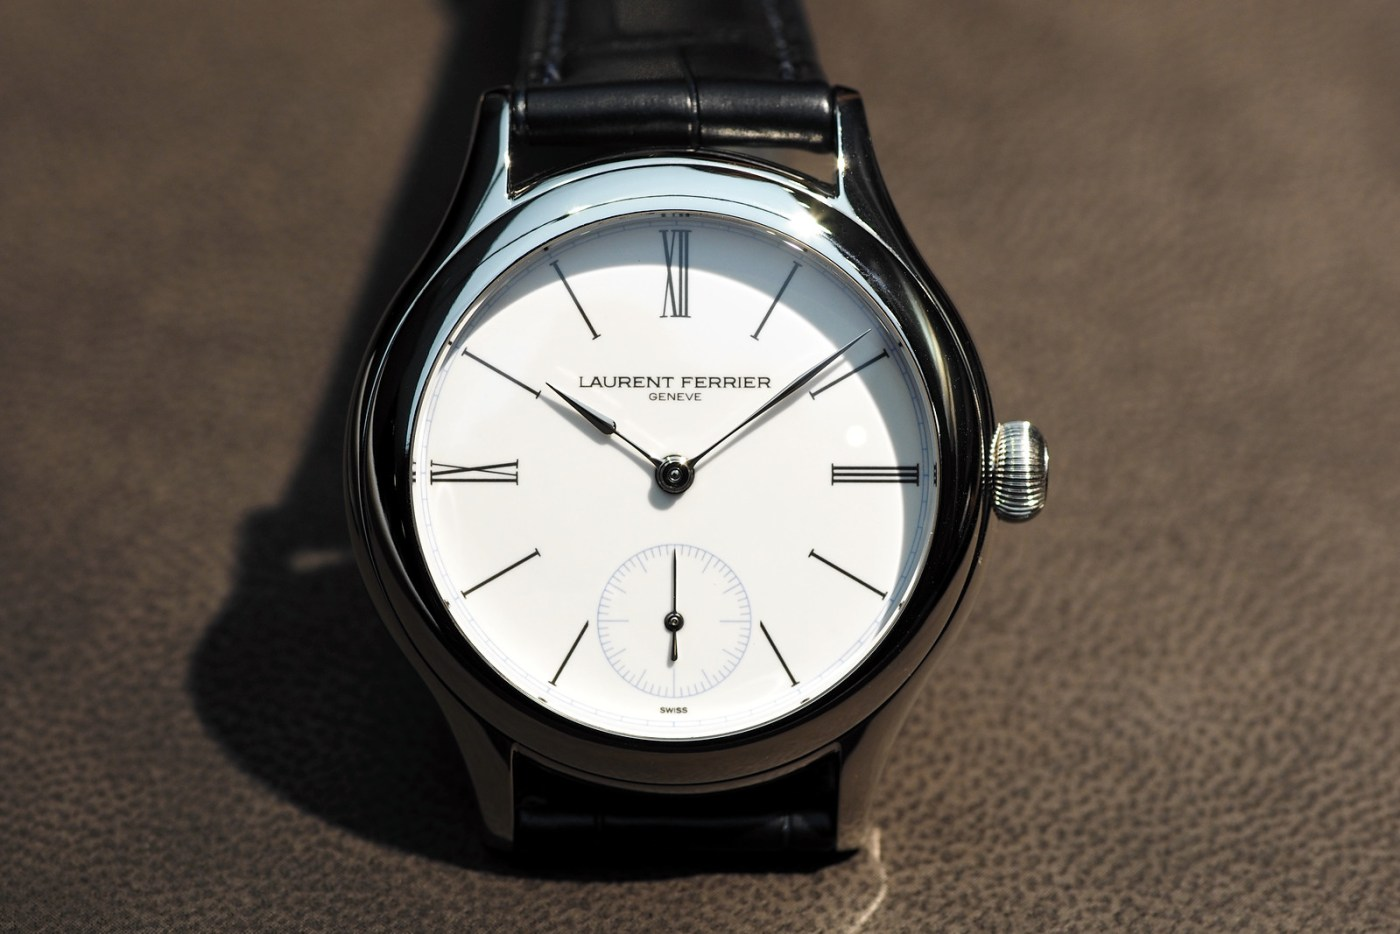 Laurent Ferrier at Baselworld 2015